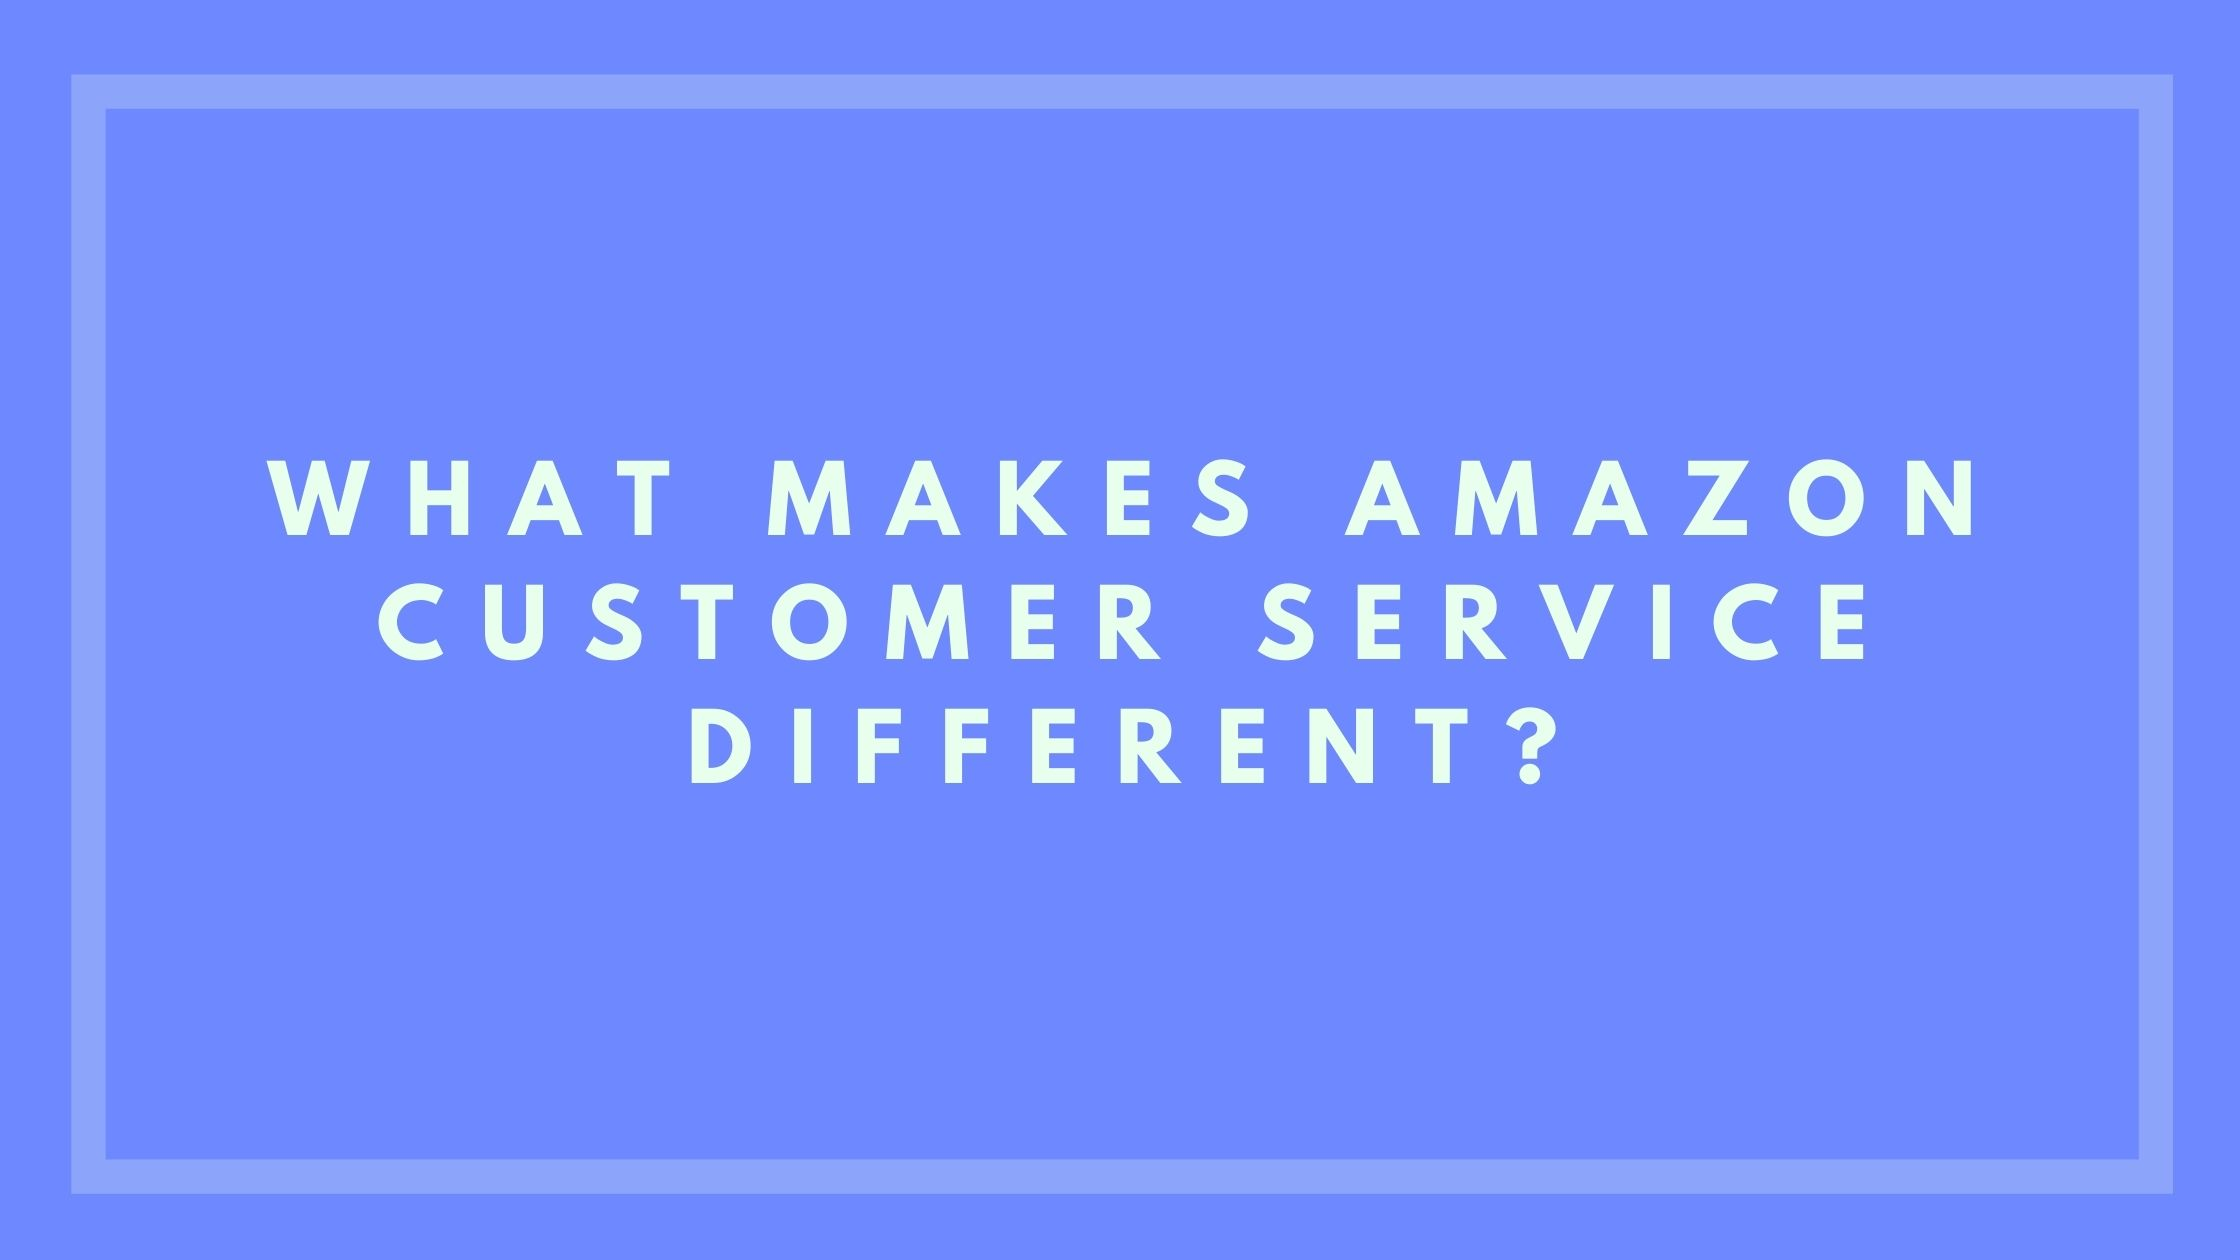 What Makes Amazon Customer Service Different?